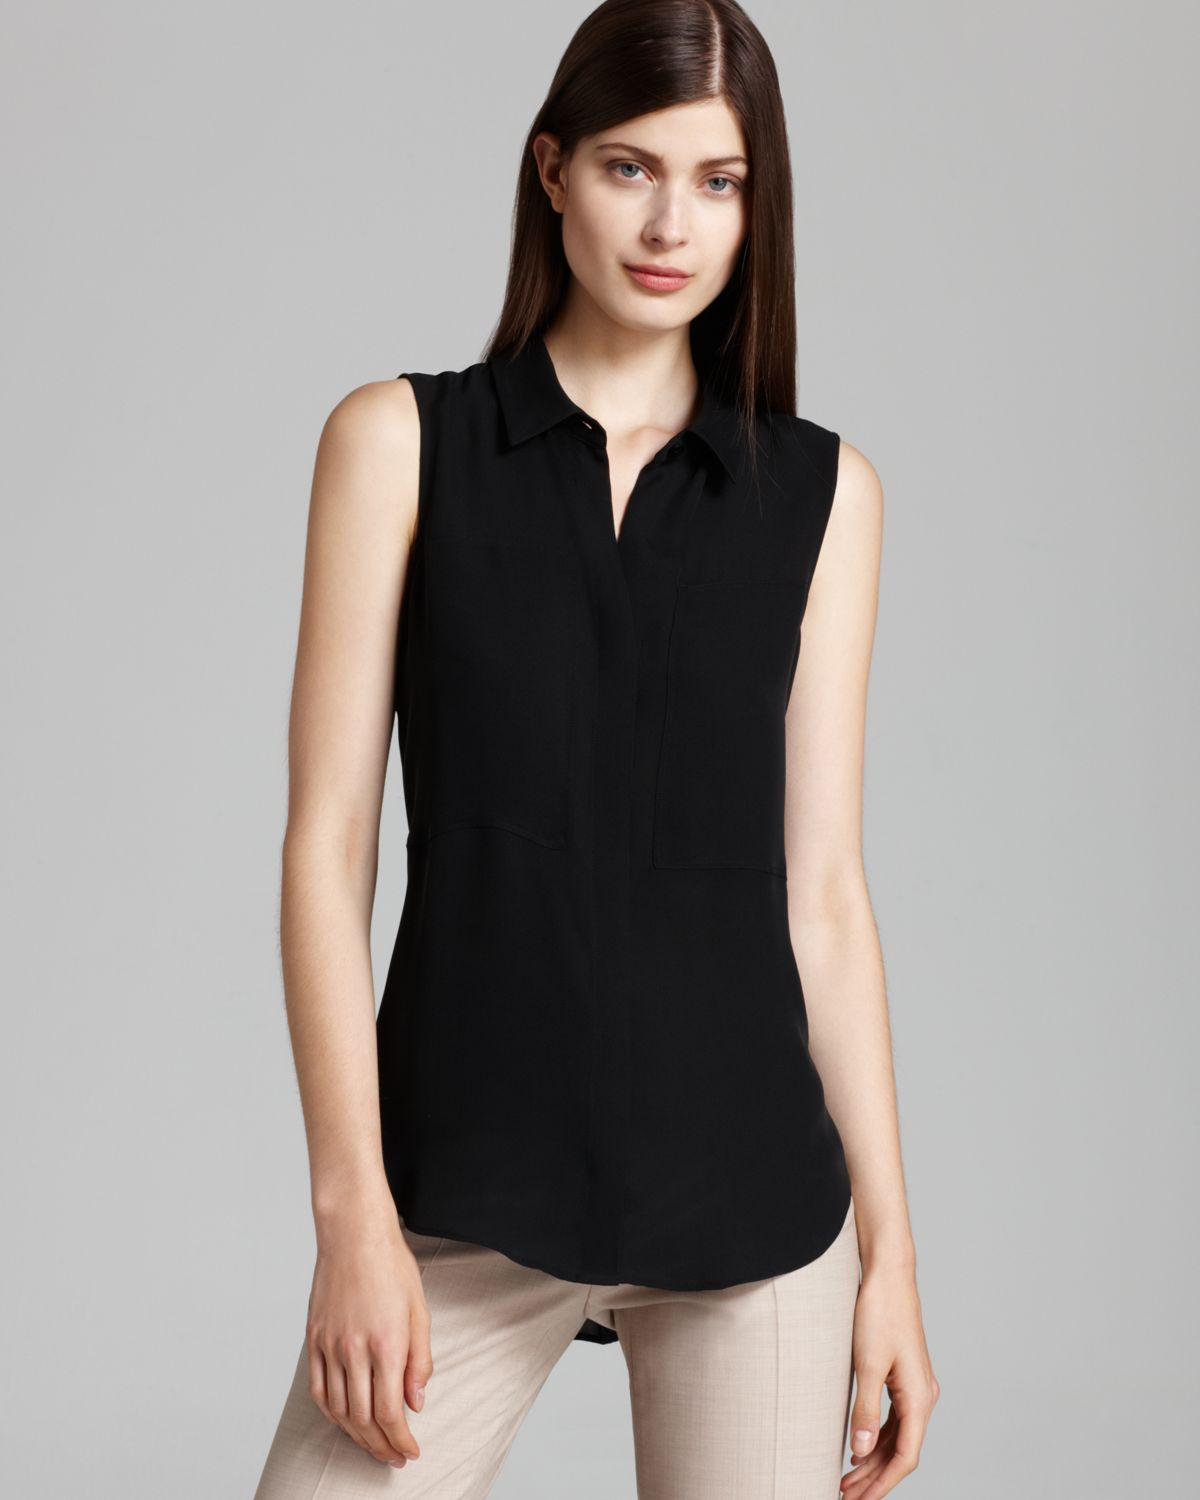 Sleeveless Blouse. A sleeveless blouse for women offer women a unique choice when it comes to dressing for the day or evening. Tops such as these give women a way to add an additional level of dressiness to their entire loadingtag.gale for the office as well as when women are going out for the evening, many women find they reach for these shirts again and again when it comes to dressing.